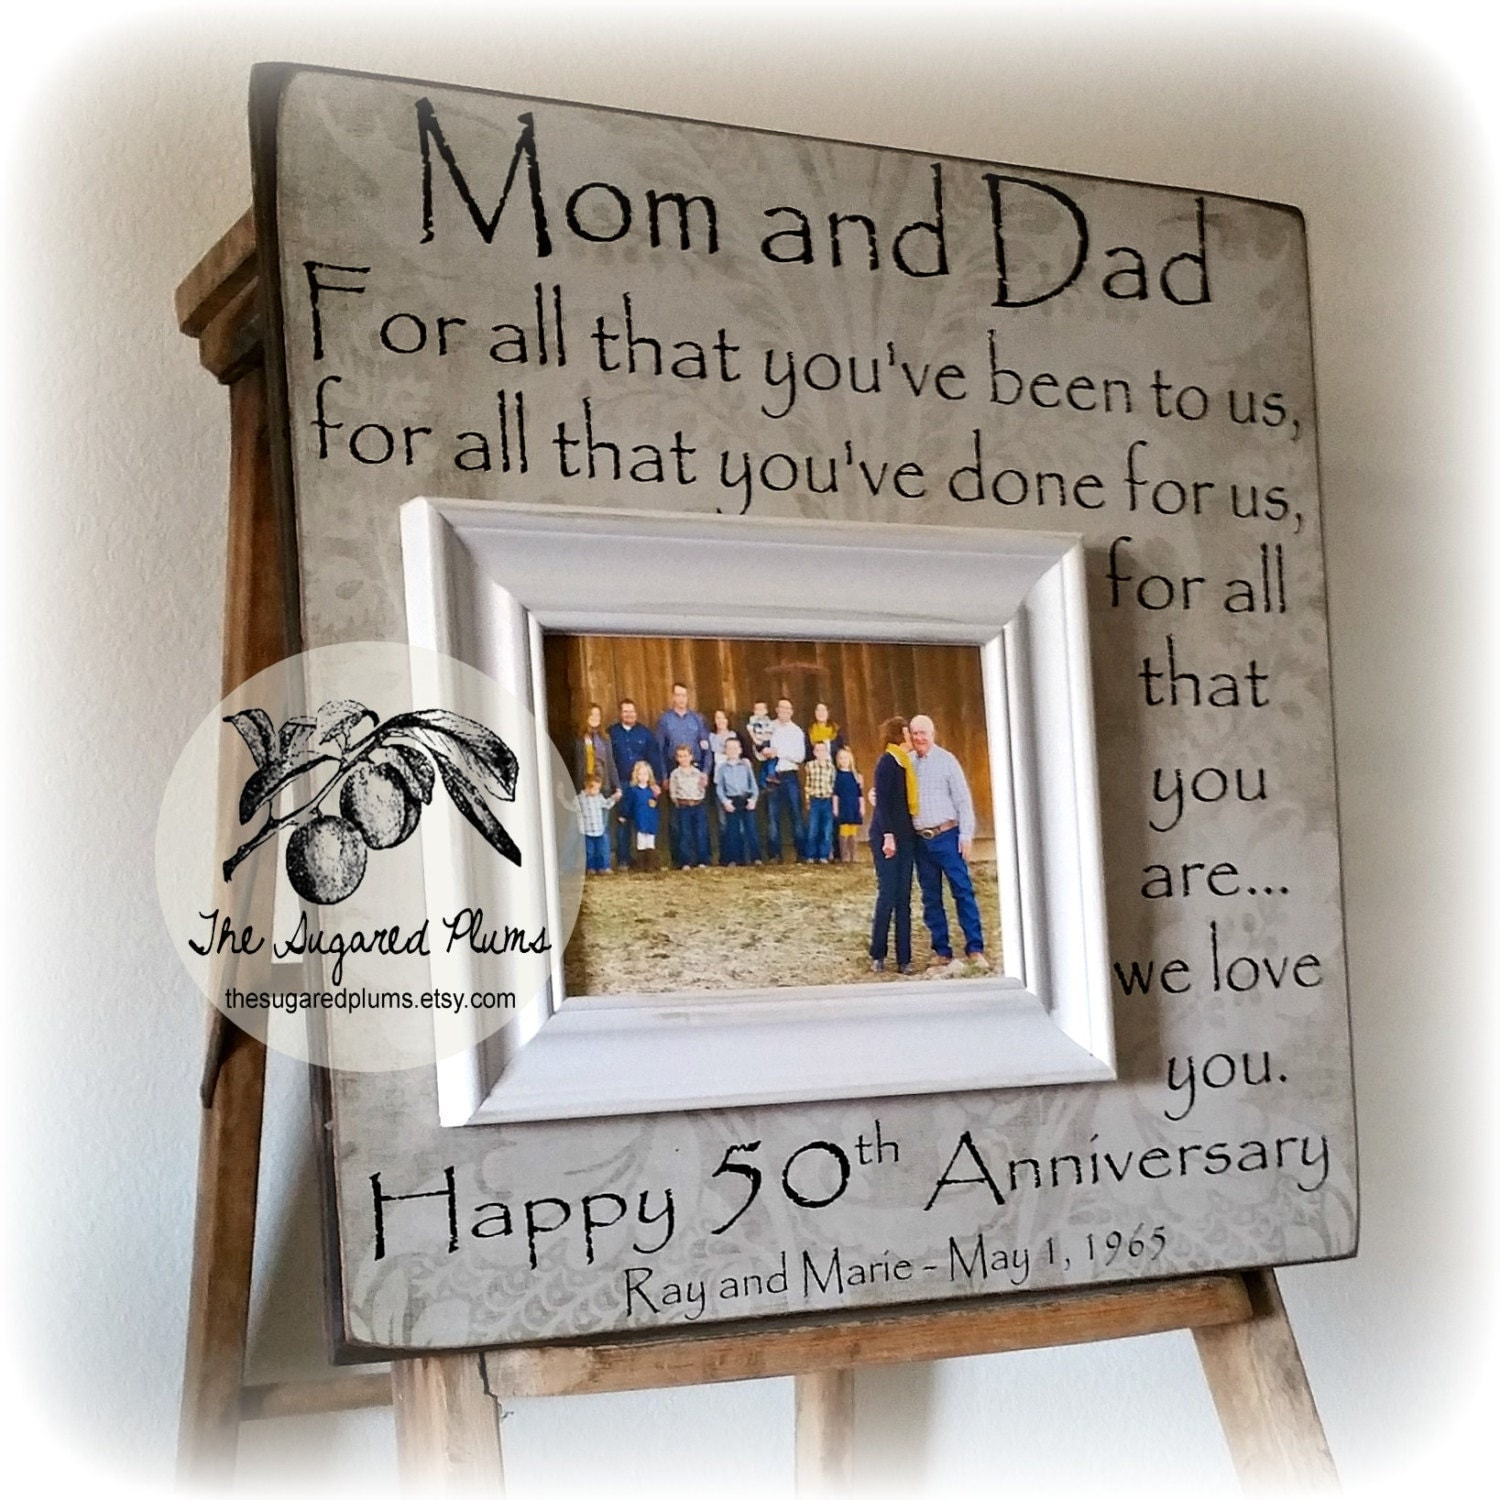 40th Wedding Anniversary Gift Ideas For Parents Australia : 50th Anniversary Gifts Parents Anniversary Gift For All That